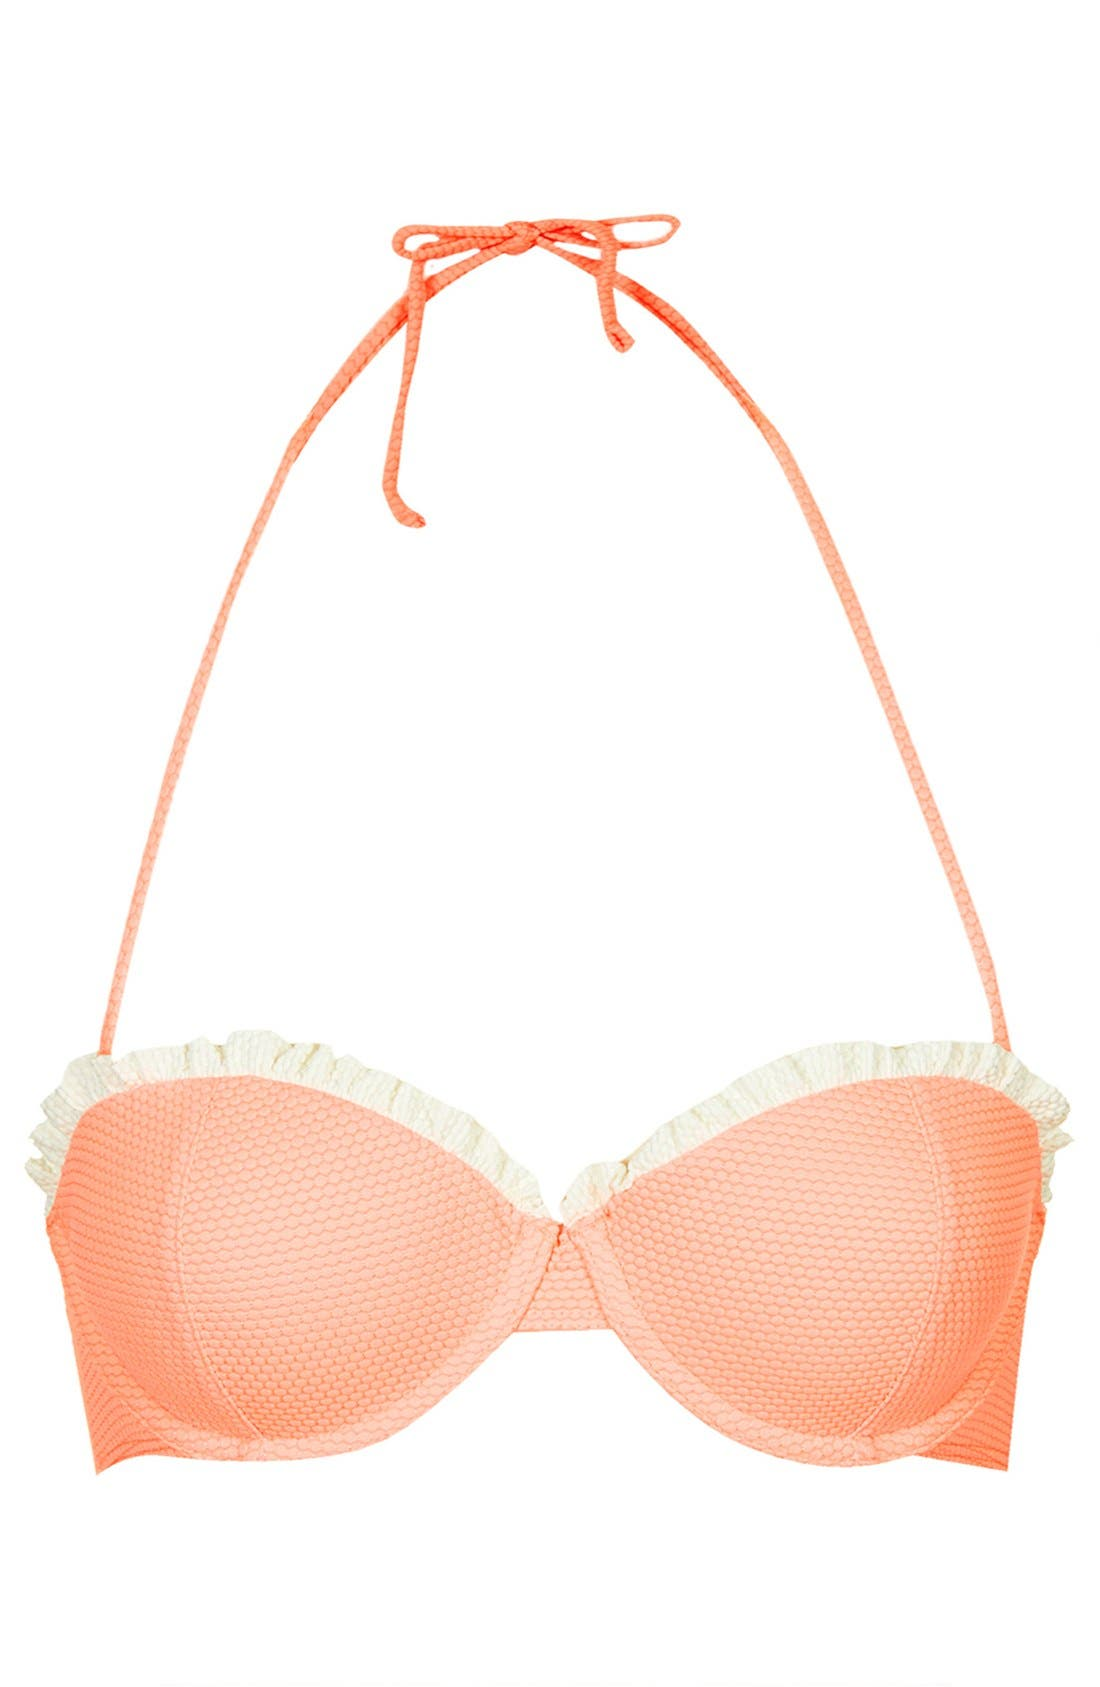 Main Image - Topshop Ruffle Trim Push-Up Bikini Top